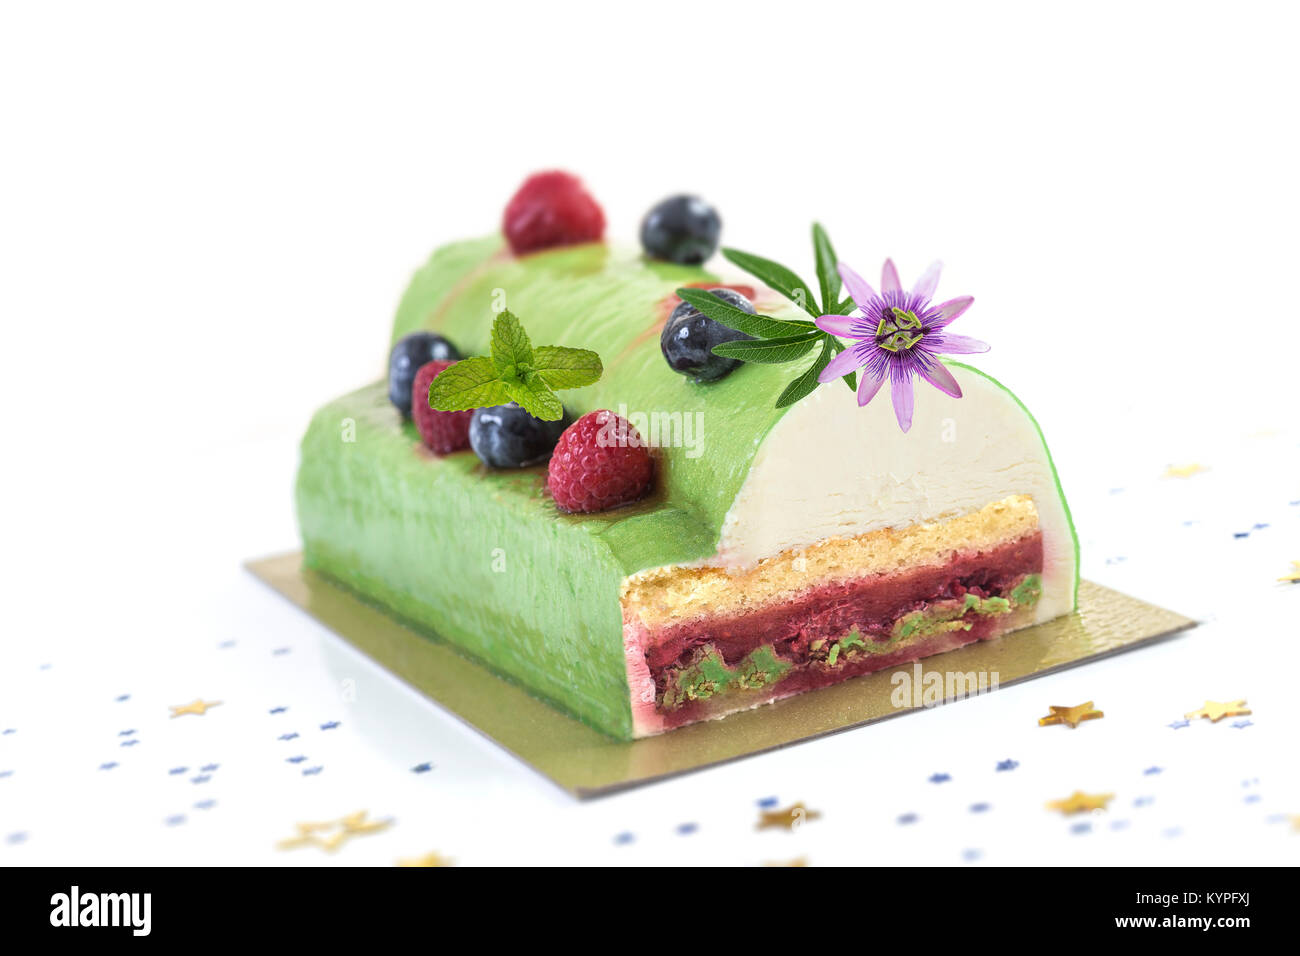 Pistachio Raspberry Yule Log decorated with fresh raspberries, blueberry, and pasion flower on white background. - Stock Image